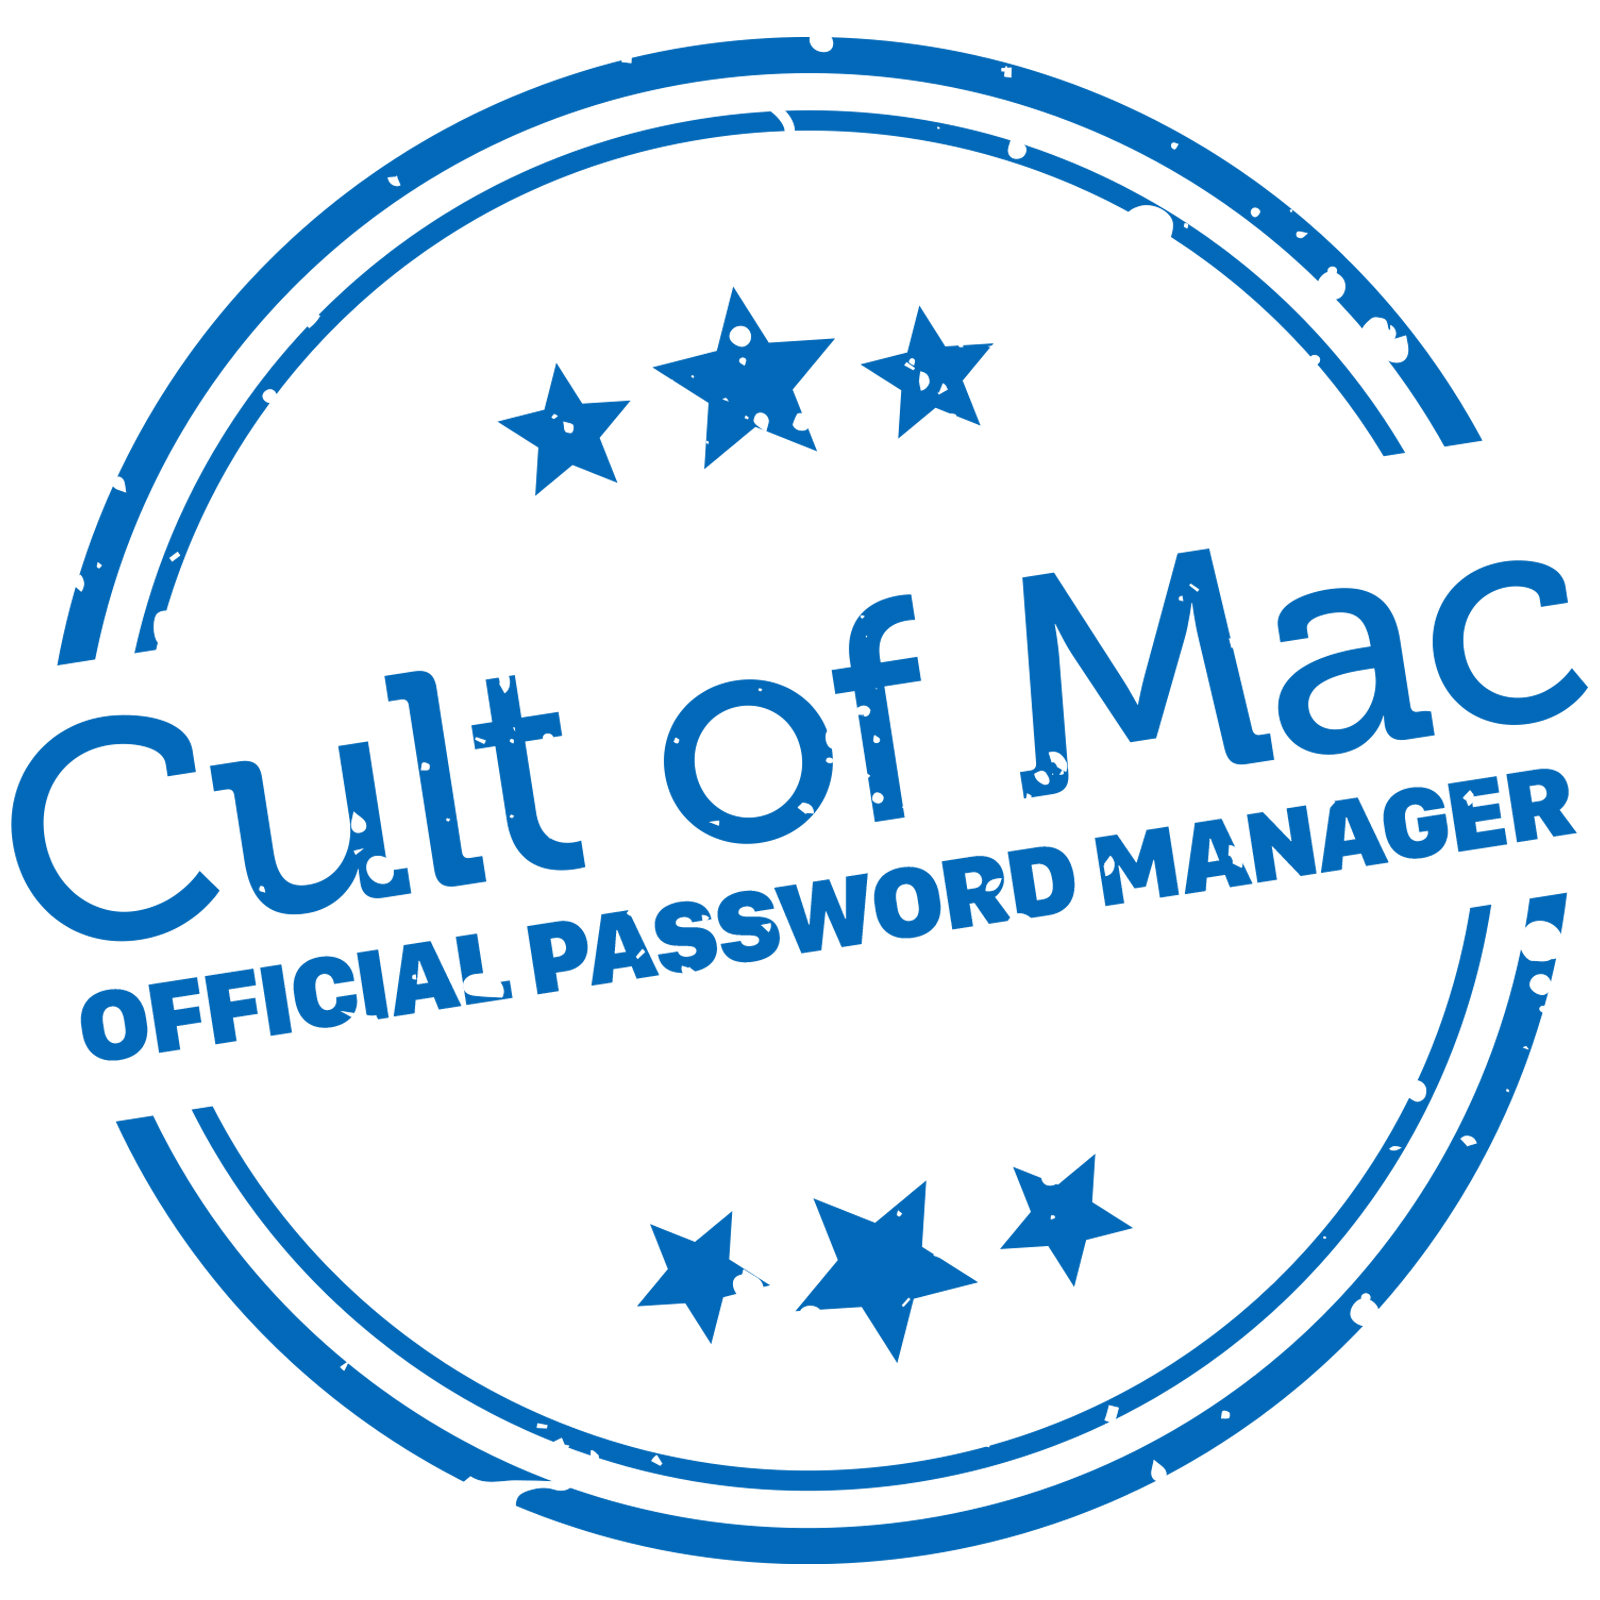 Dashlane: Official password manager of Cult of Mac.